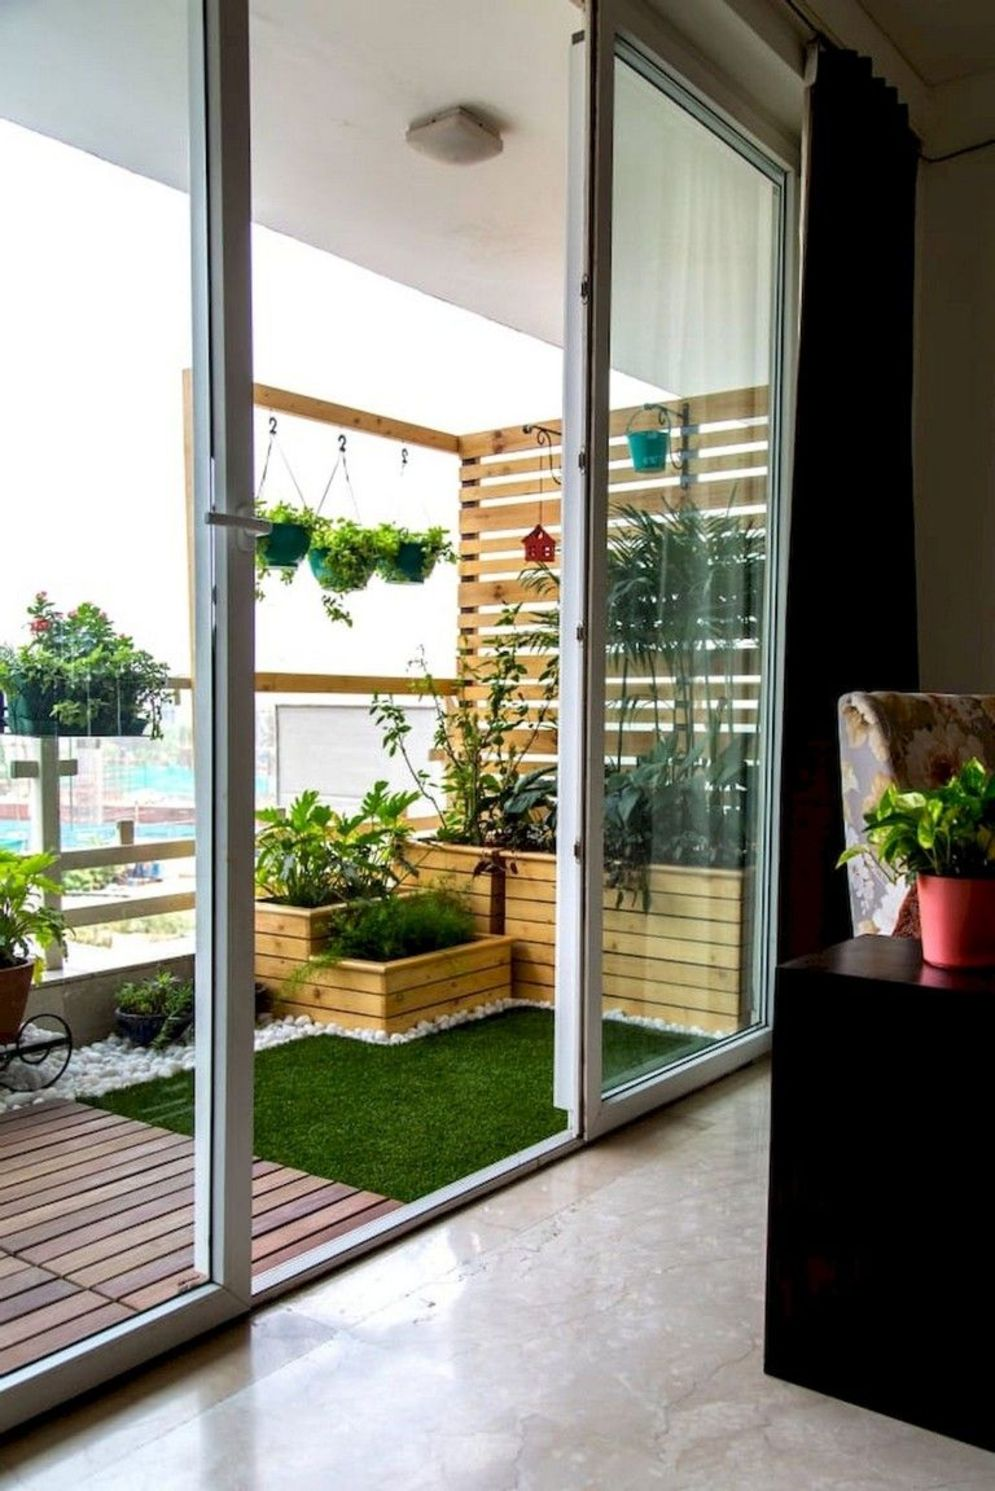 Clever apartment balcony conversion maximizing small space into functional living area Image 38